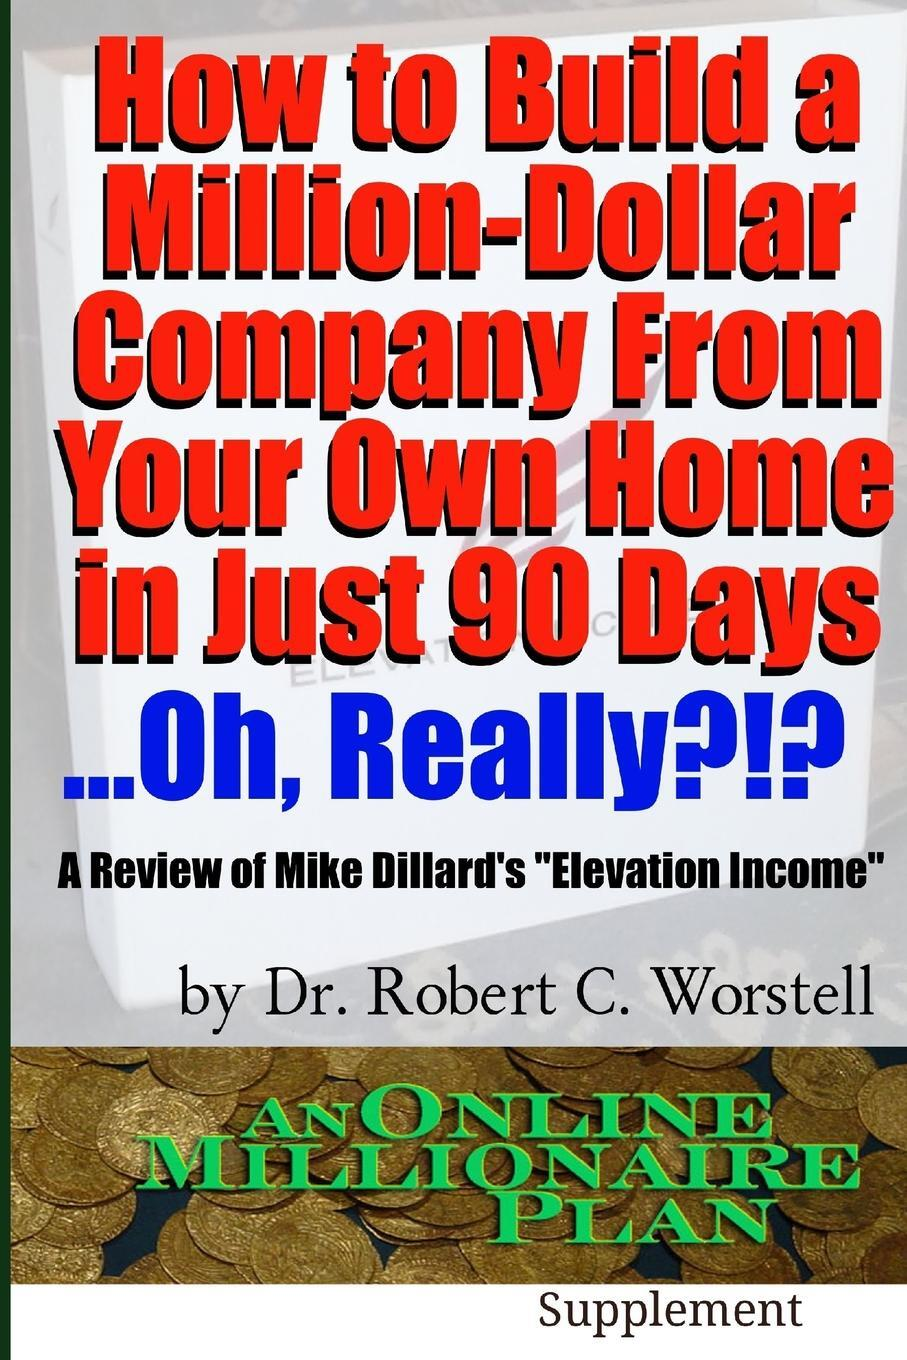 How to Build a Million-Dollar Company from Your Own Home in Just 90 Days ...Really?!?